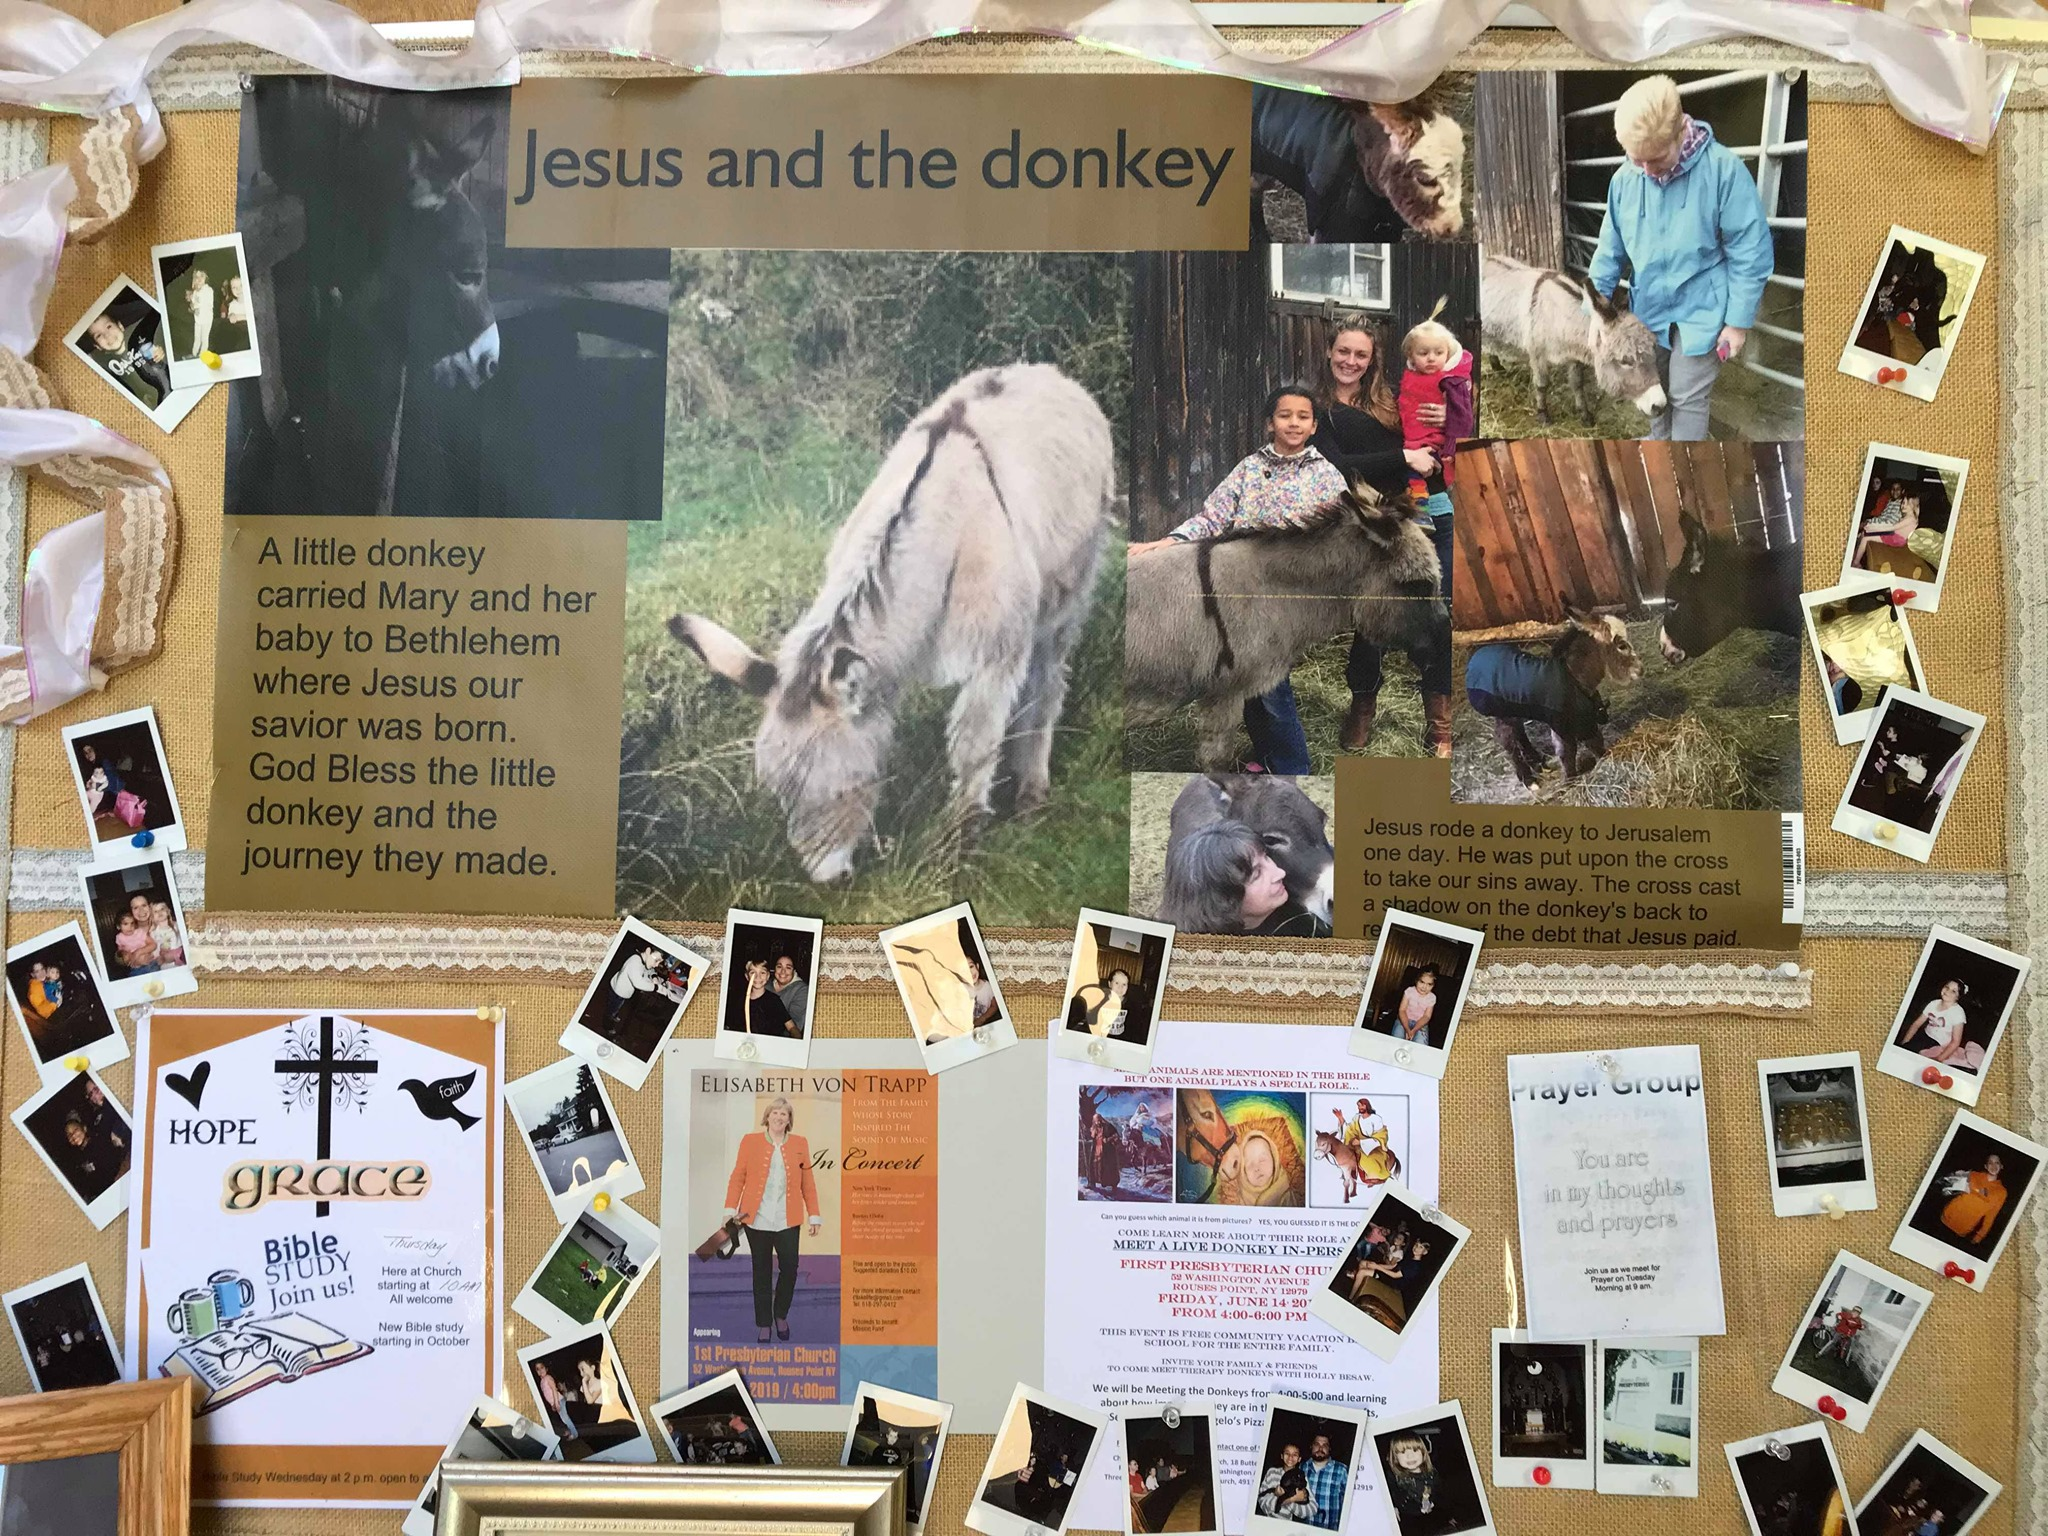 Jesus and the Donkey